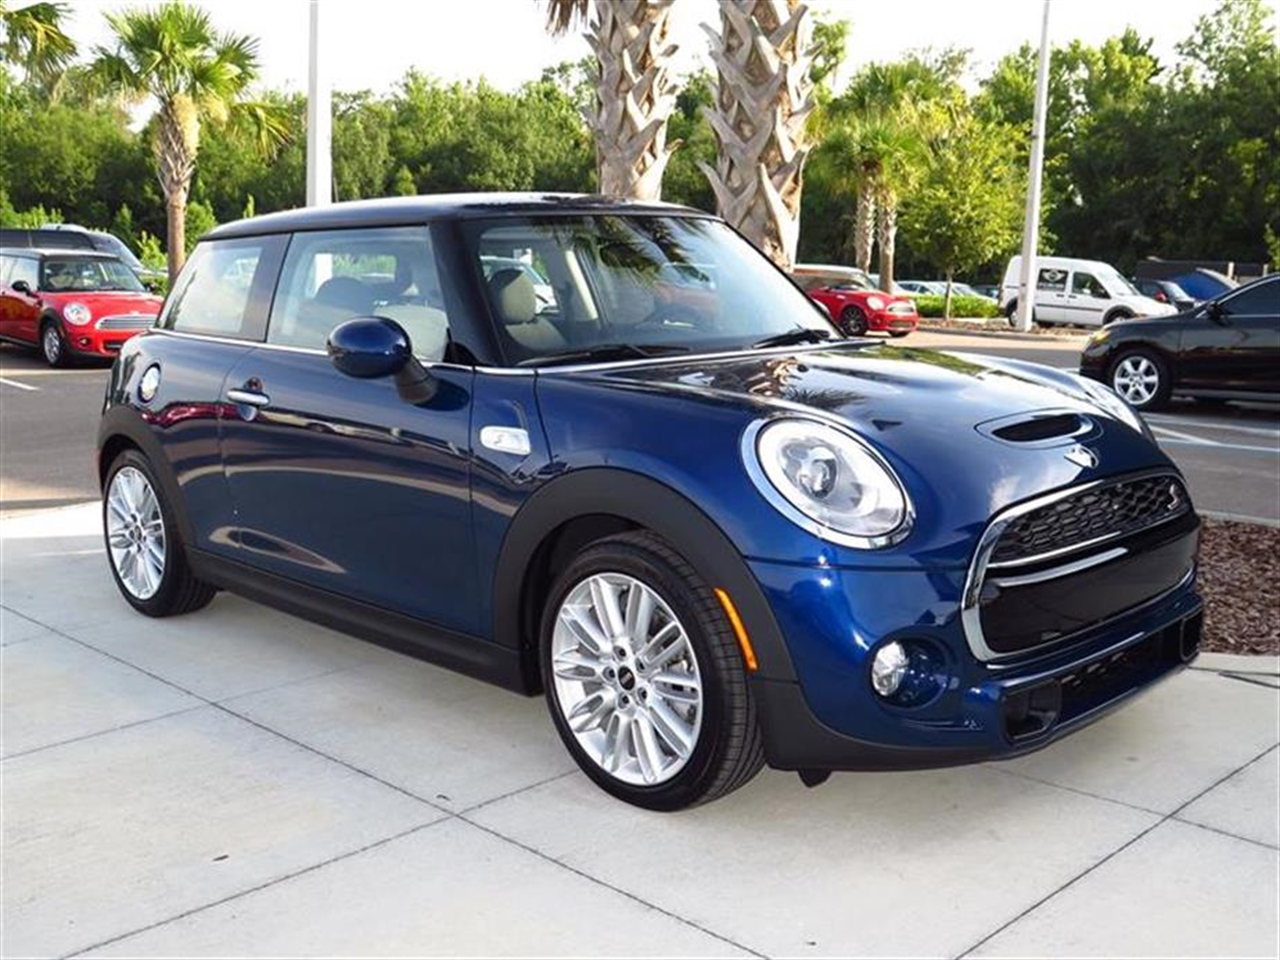 2014 MINI COOPER HARDTOP 2dr Cpe S 0 miles 1 12V DC Power Outlet 2 Seatback Storage Pockets 4 Pe